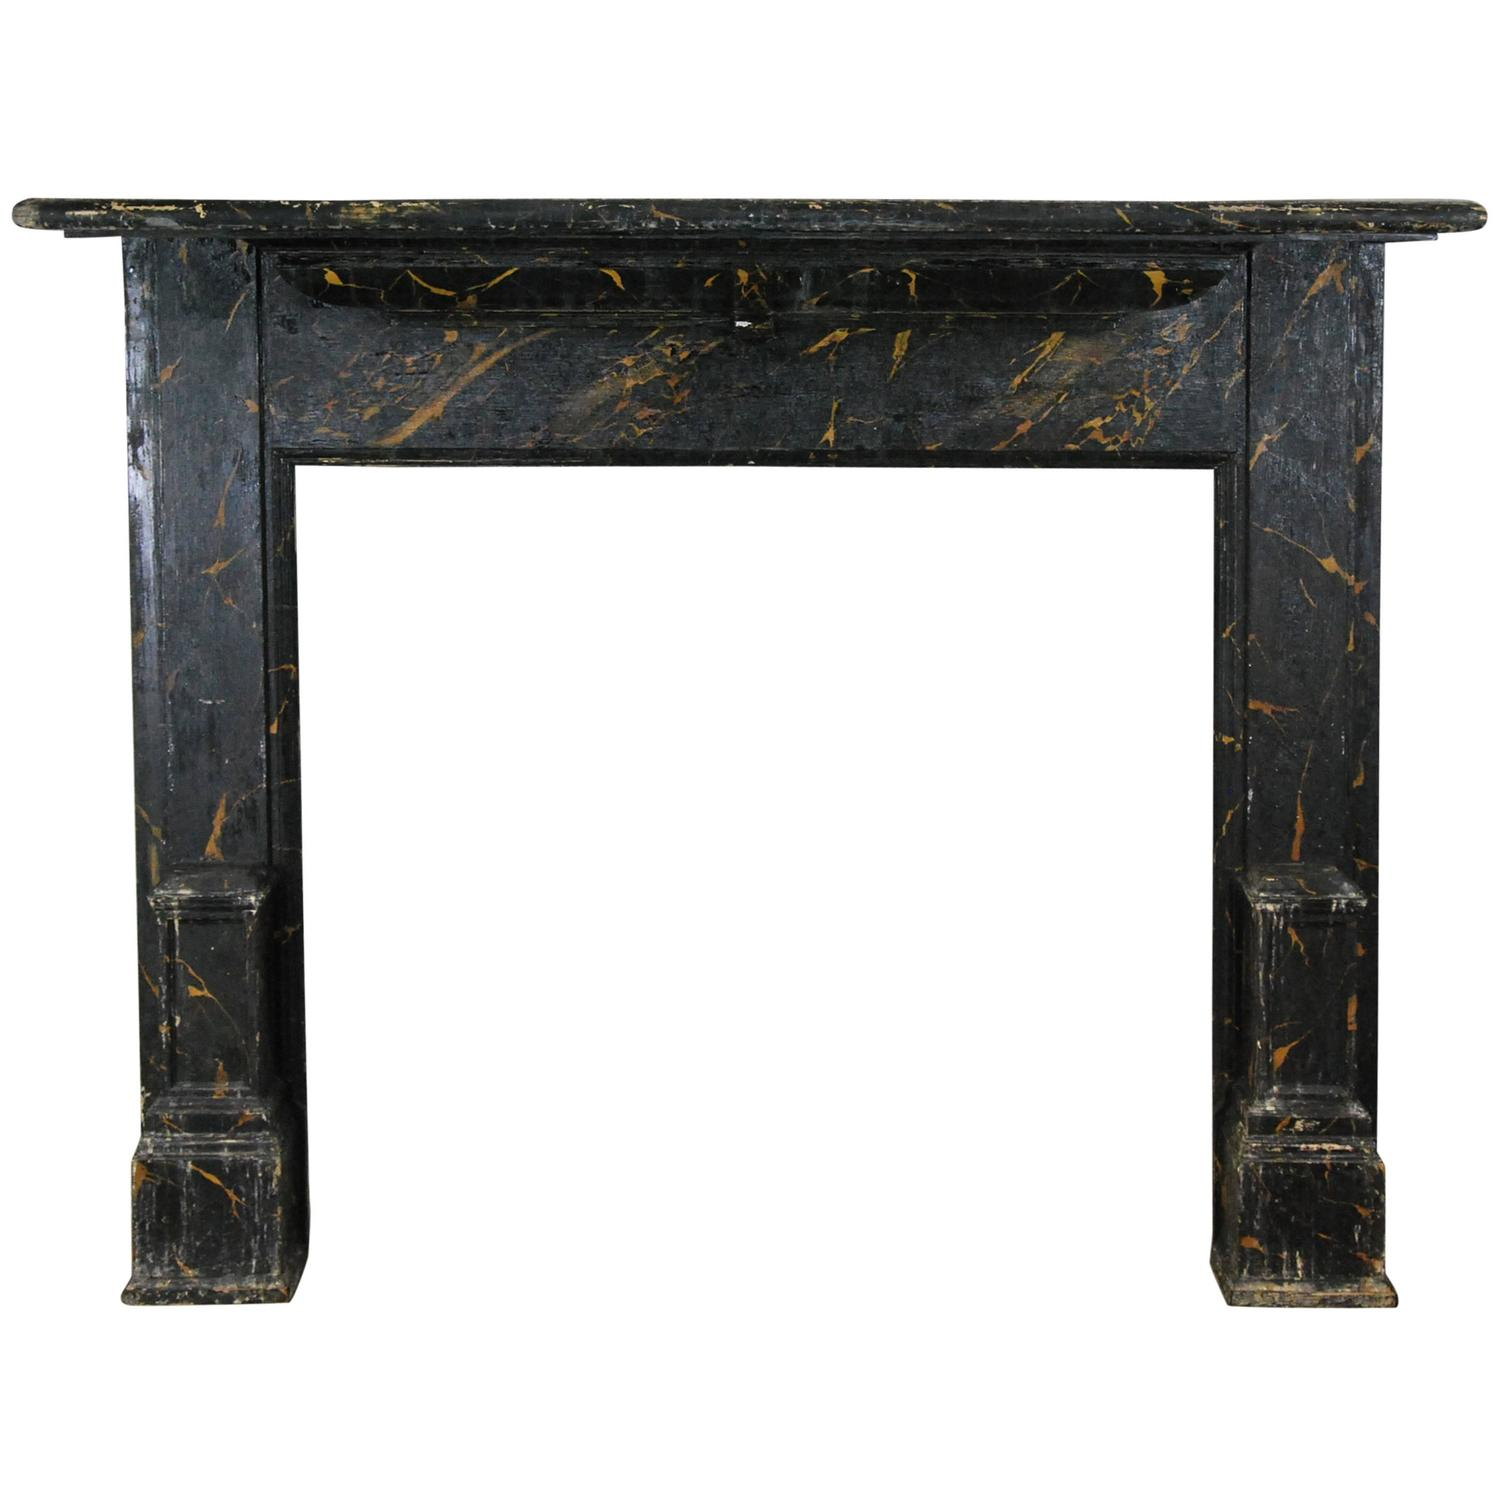 1890 faux marble american oak fireplace surround mantle at for Faux marble fireplace mantels